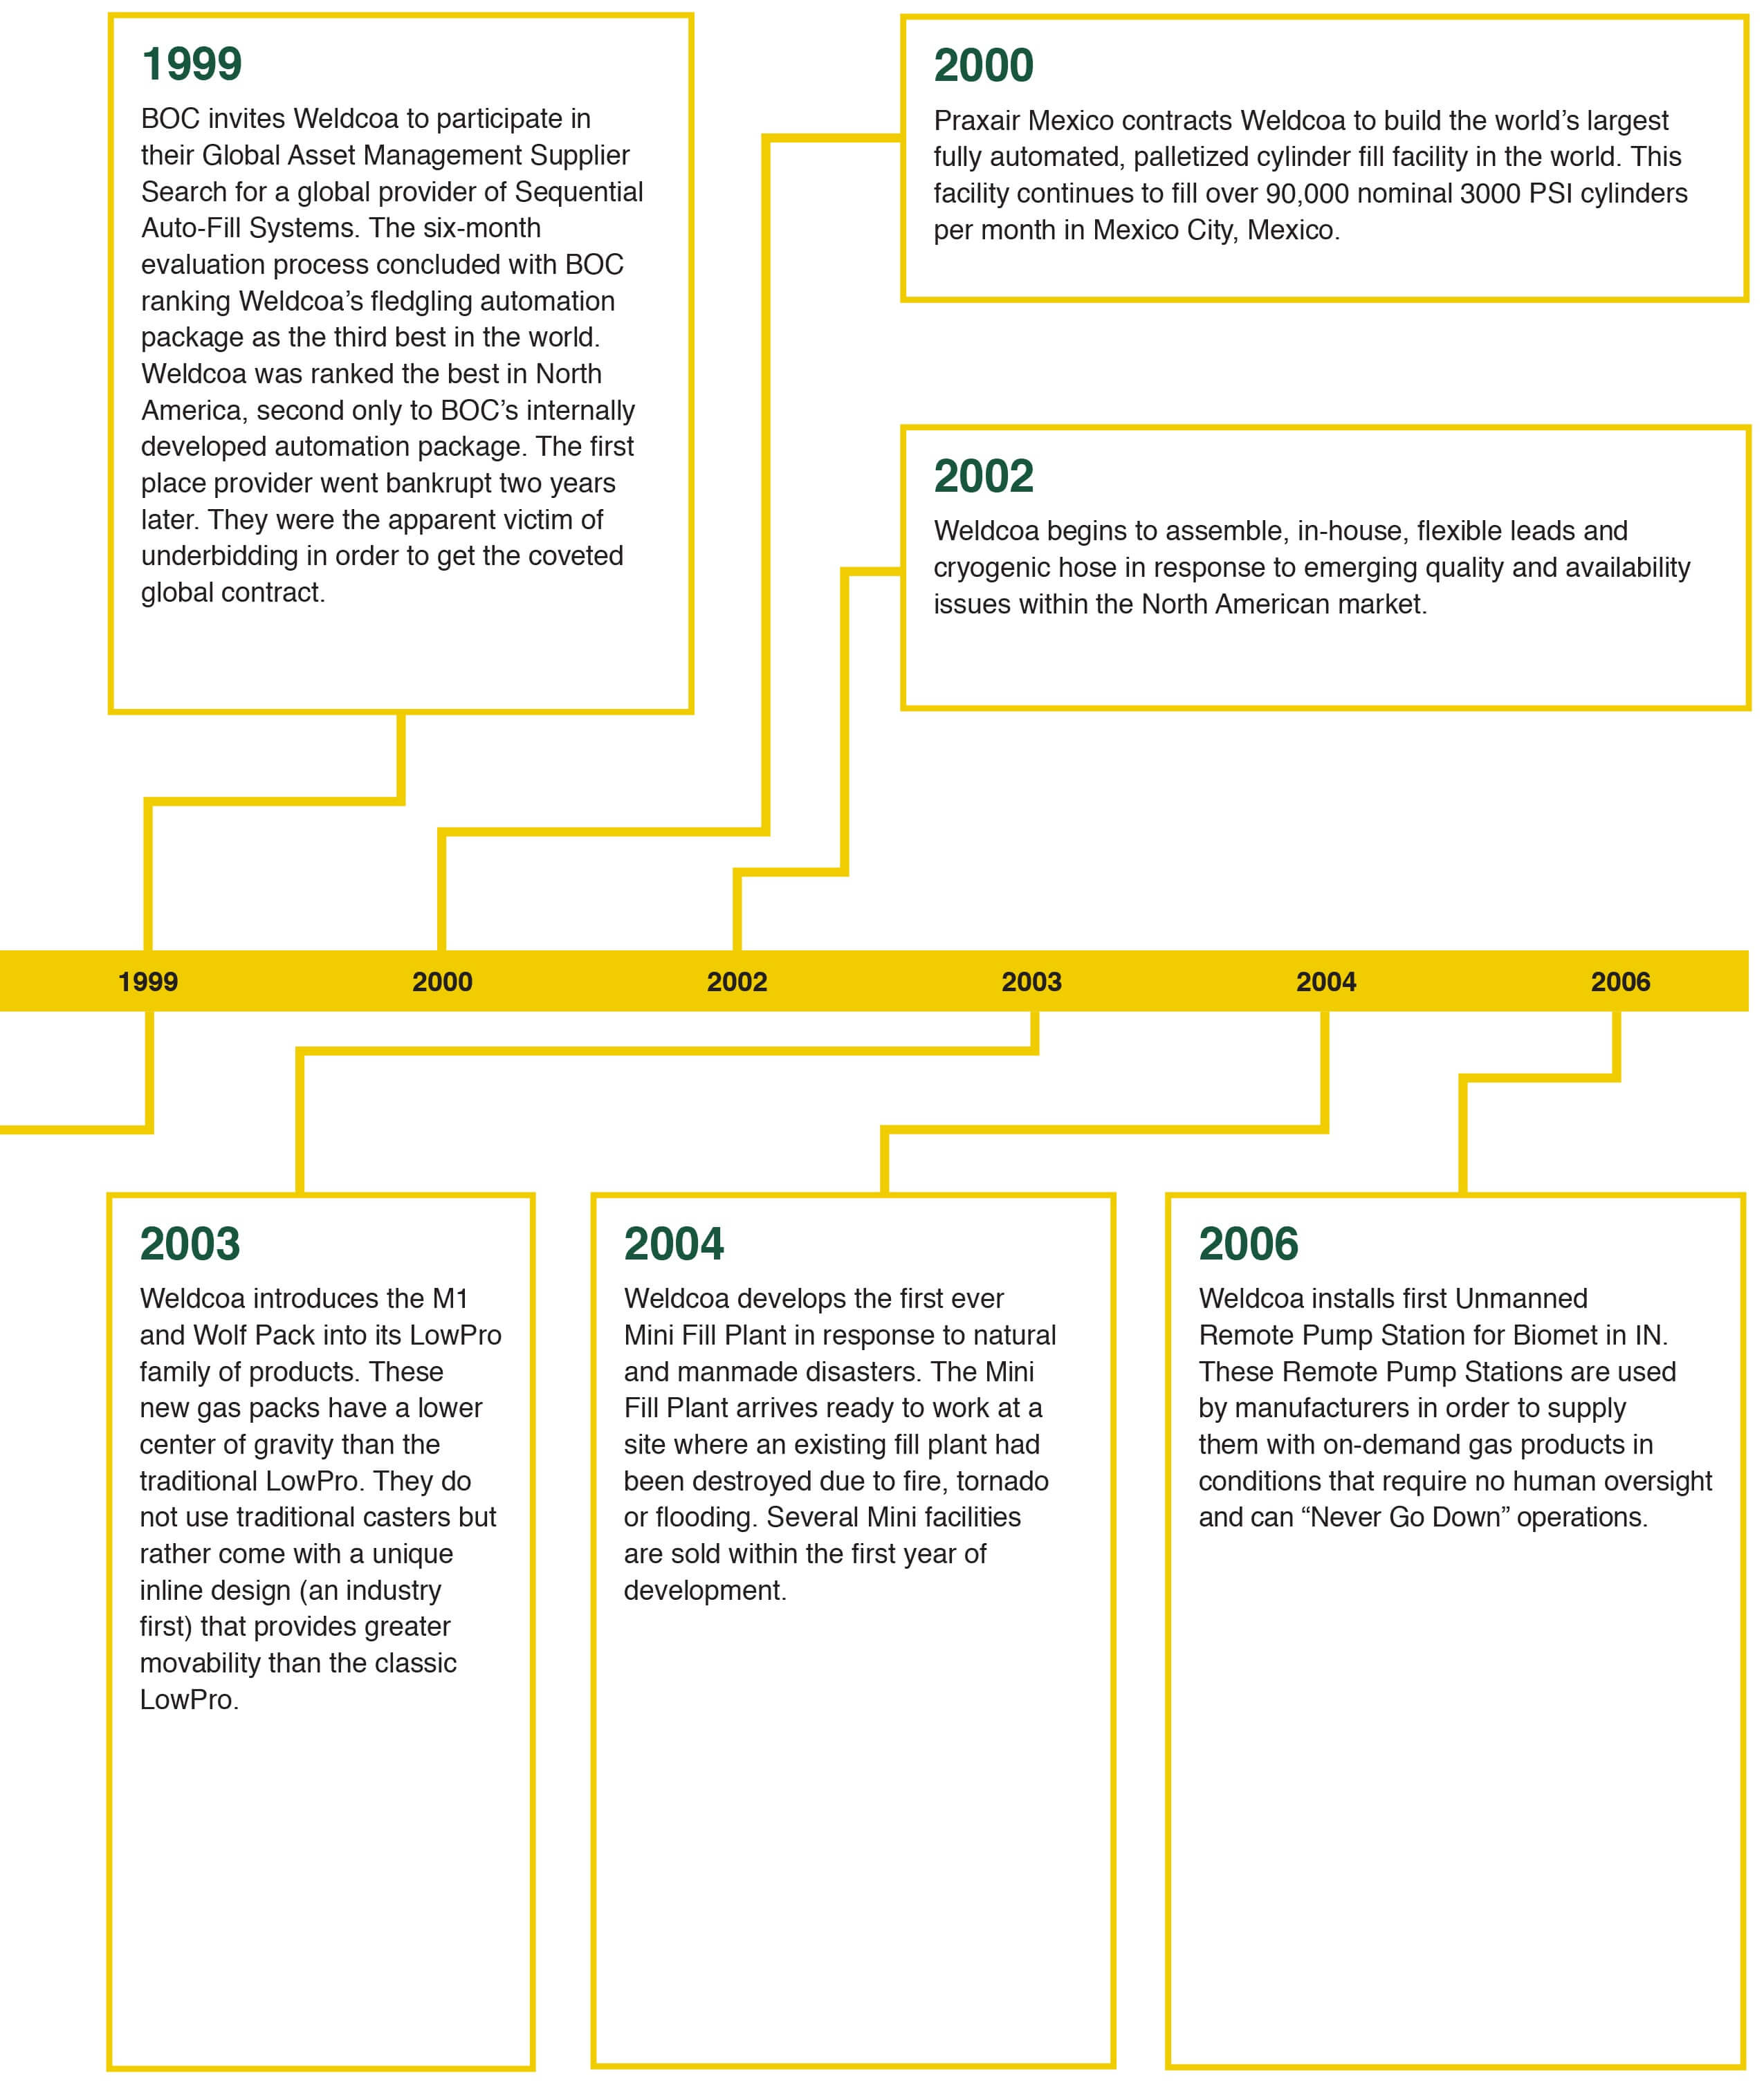 History of Firsts 1999-2006